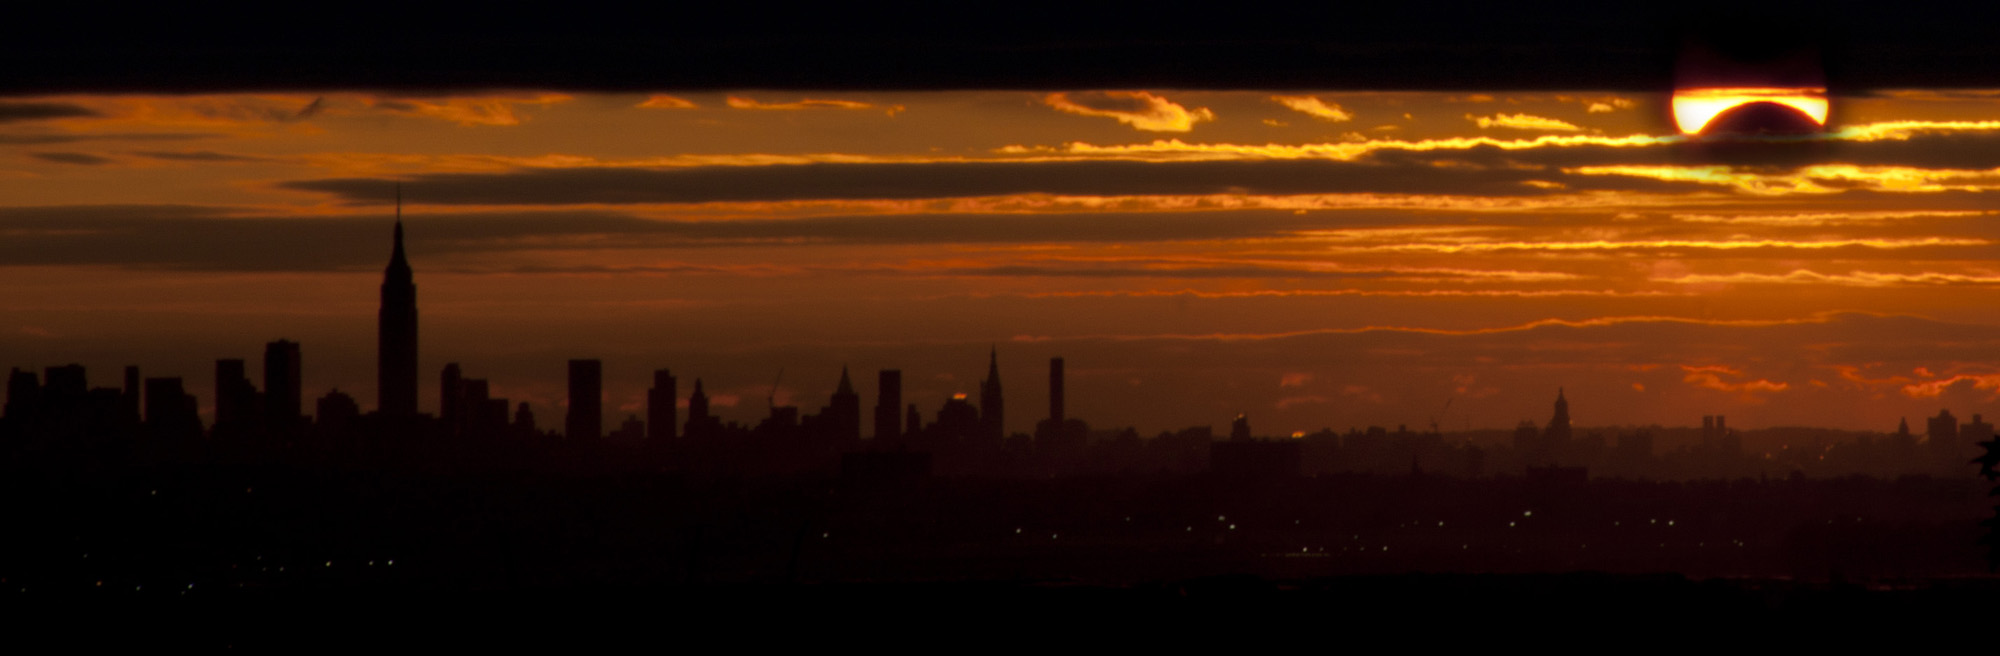 Nov. 3, 2013 Solar Eclipse Over NYC: Nick Sperling